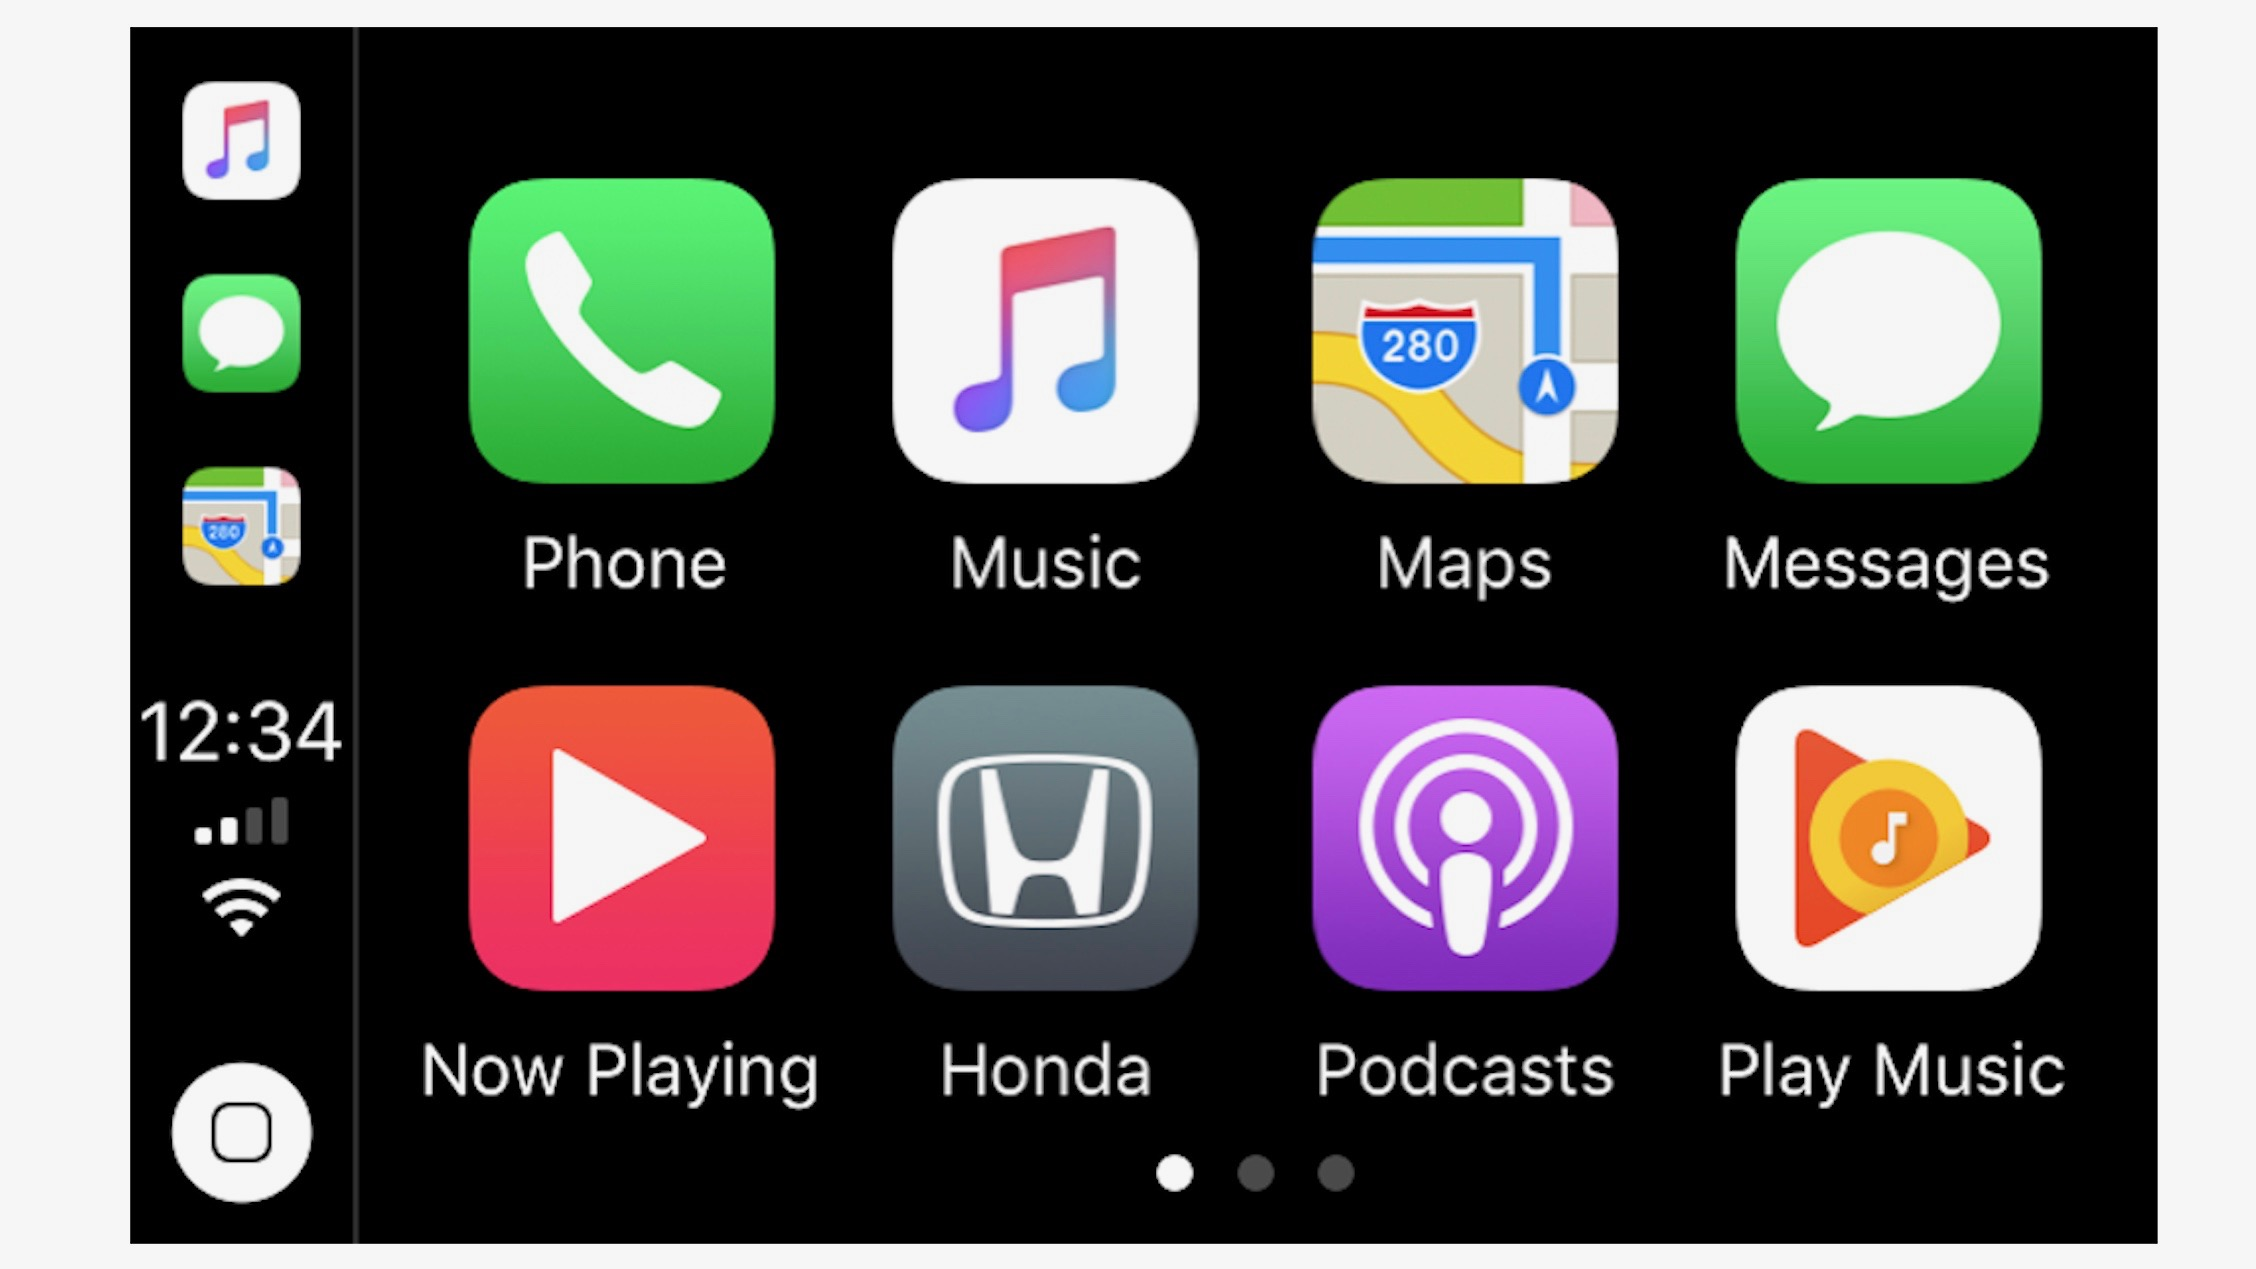 How to get youtube music to play on iphone xr in carplay